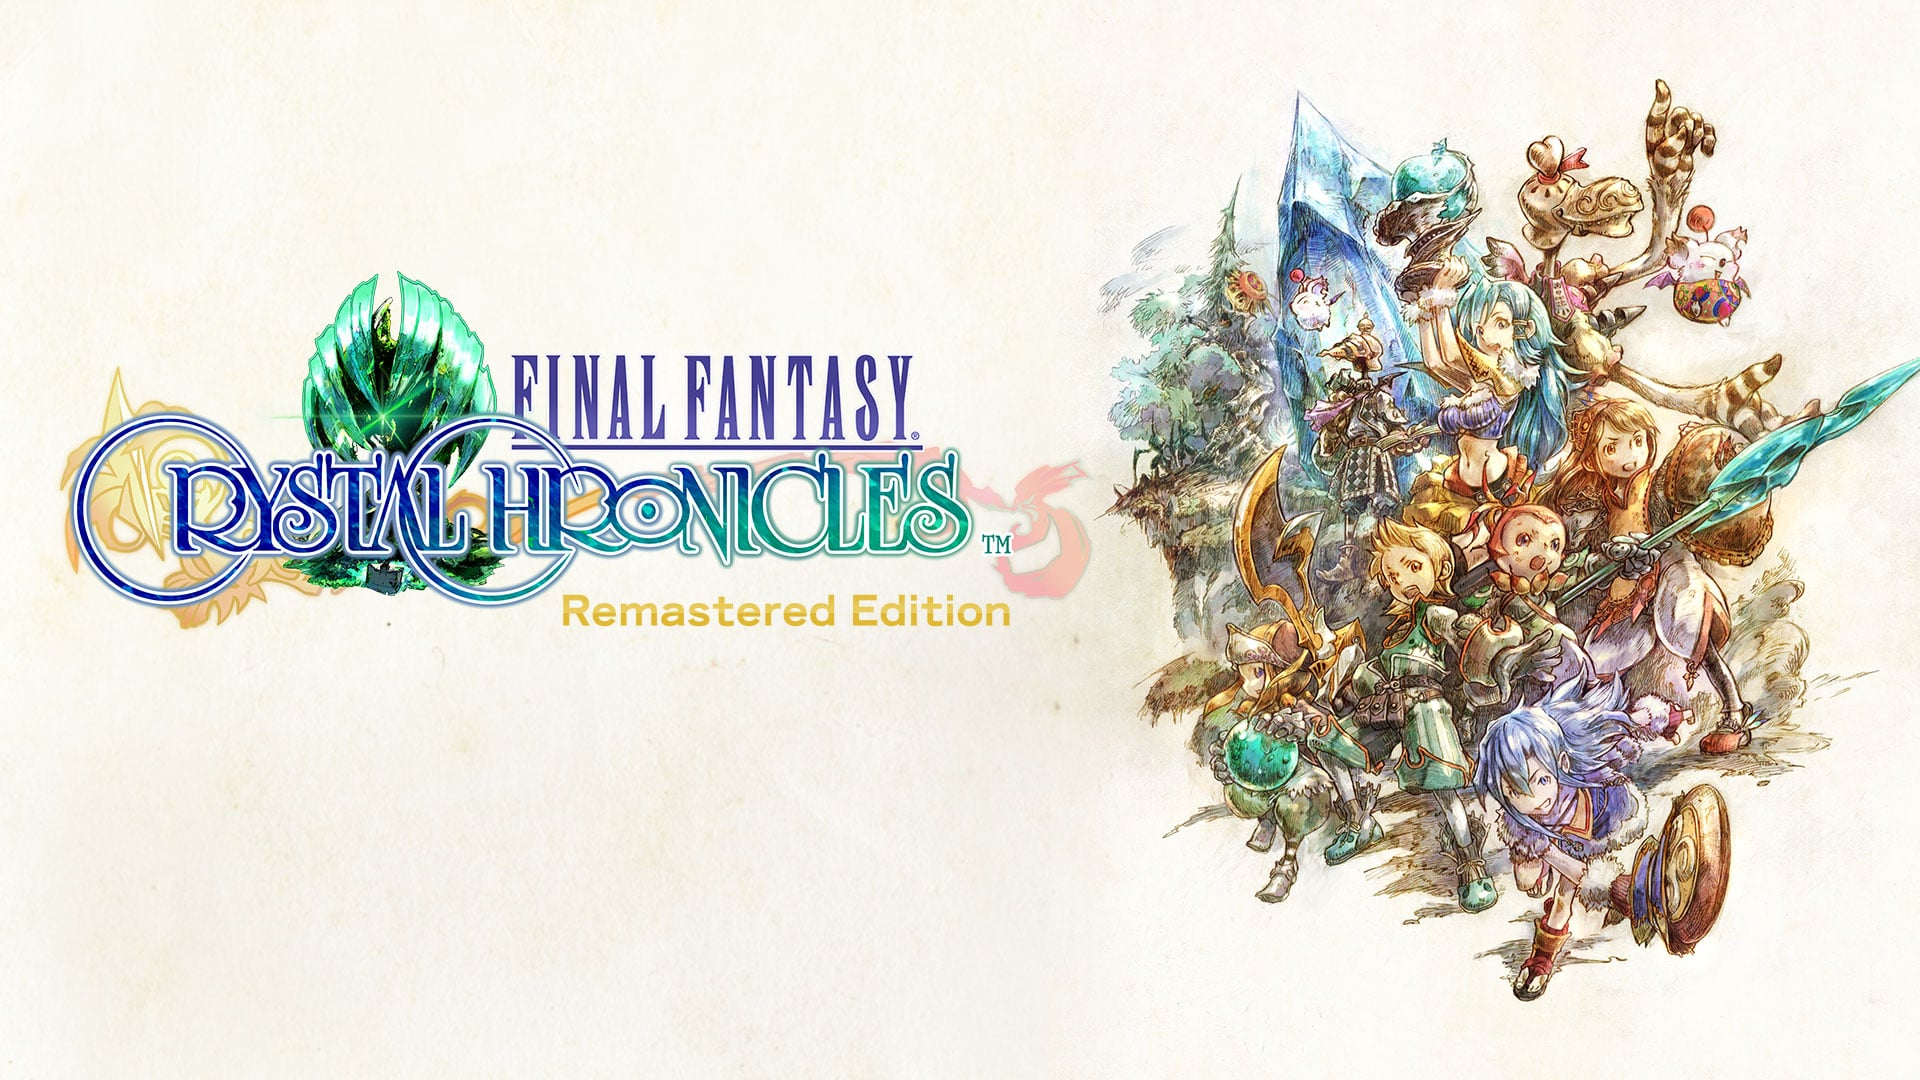 Final Fantasy Crystal Chronicles Remastered Edition (Nintendo Switch First Impressions)